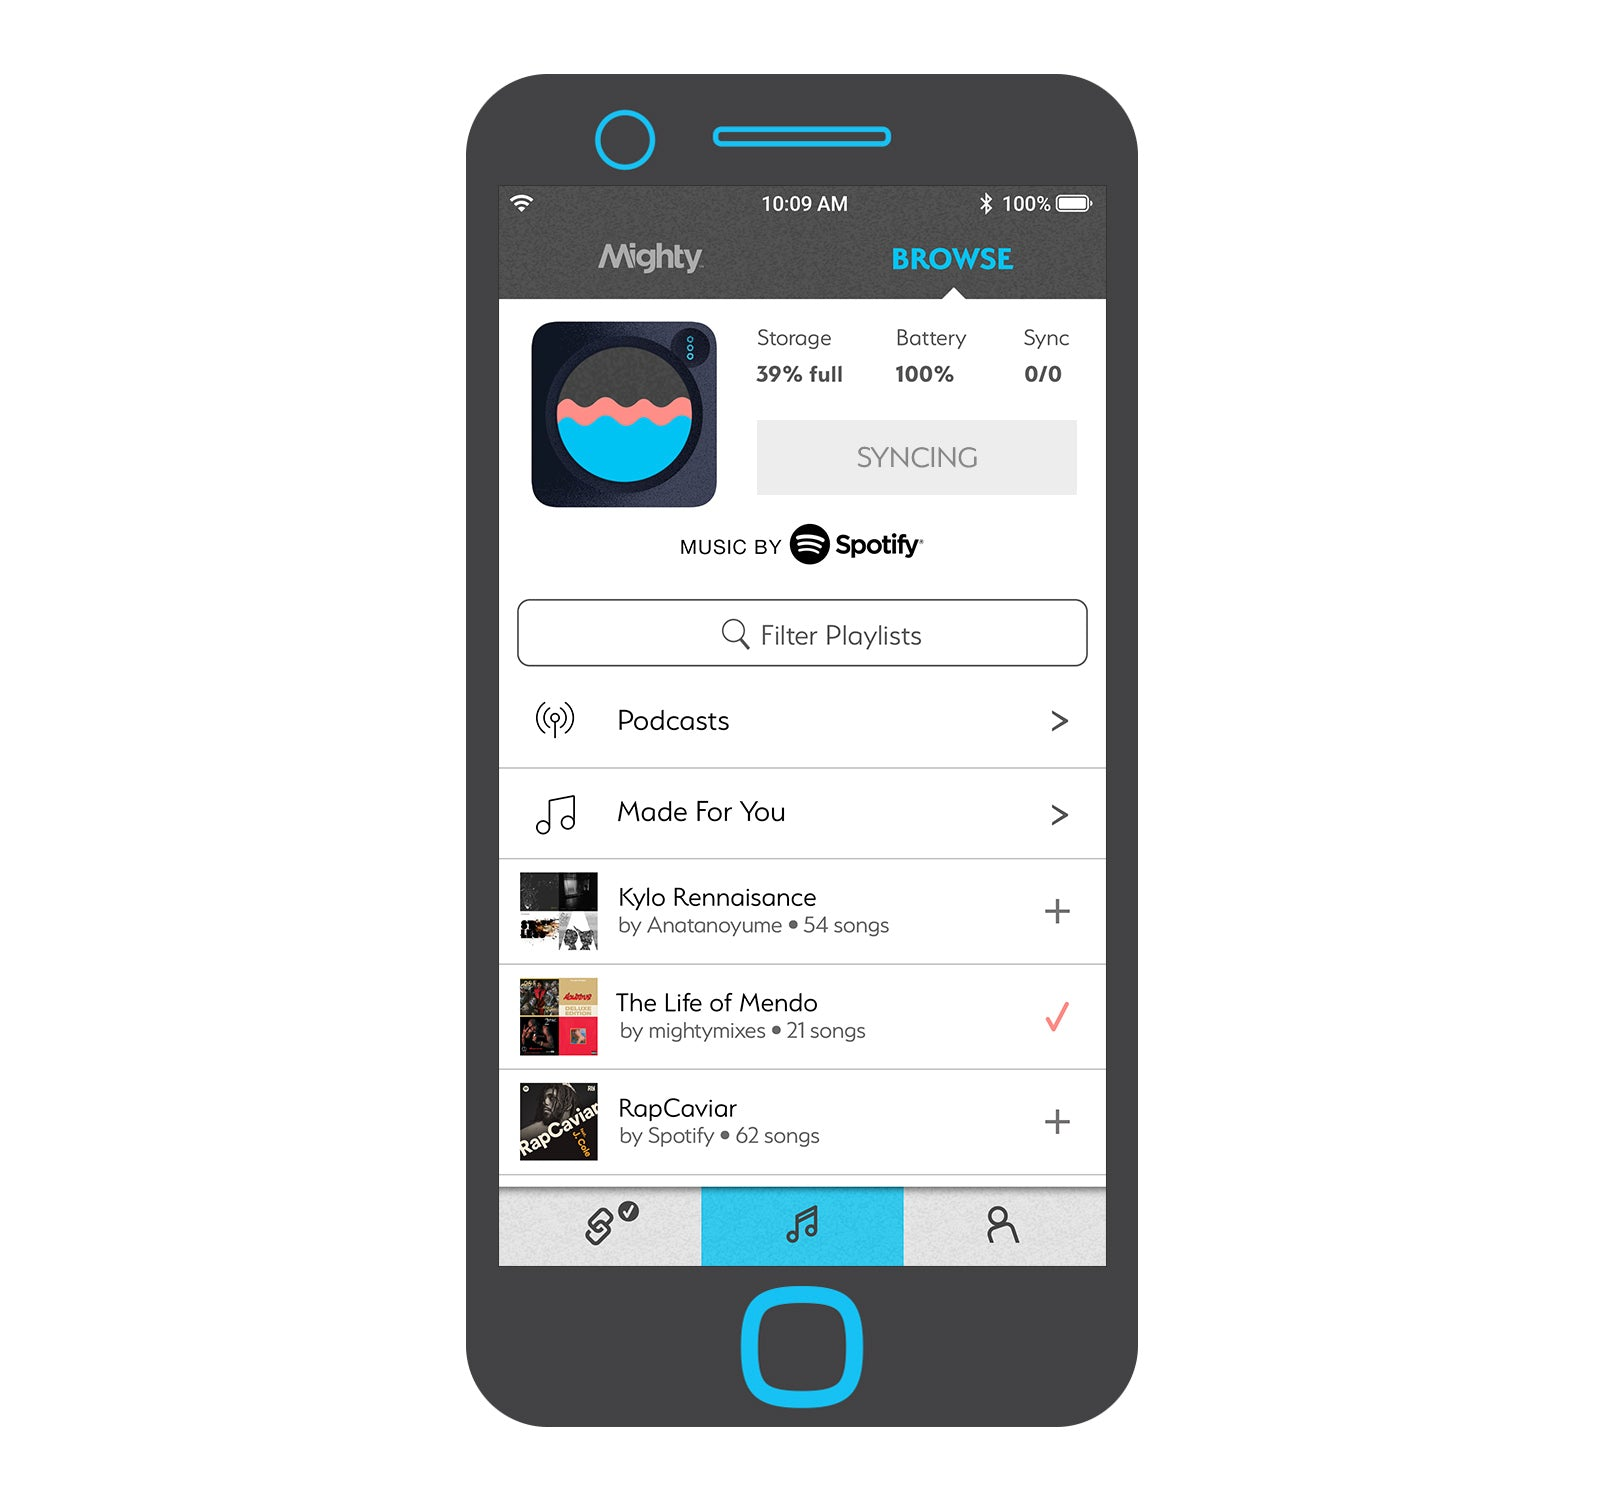 6. Hit the sync button to store your music offline on Mighty